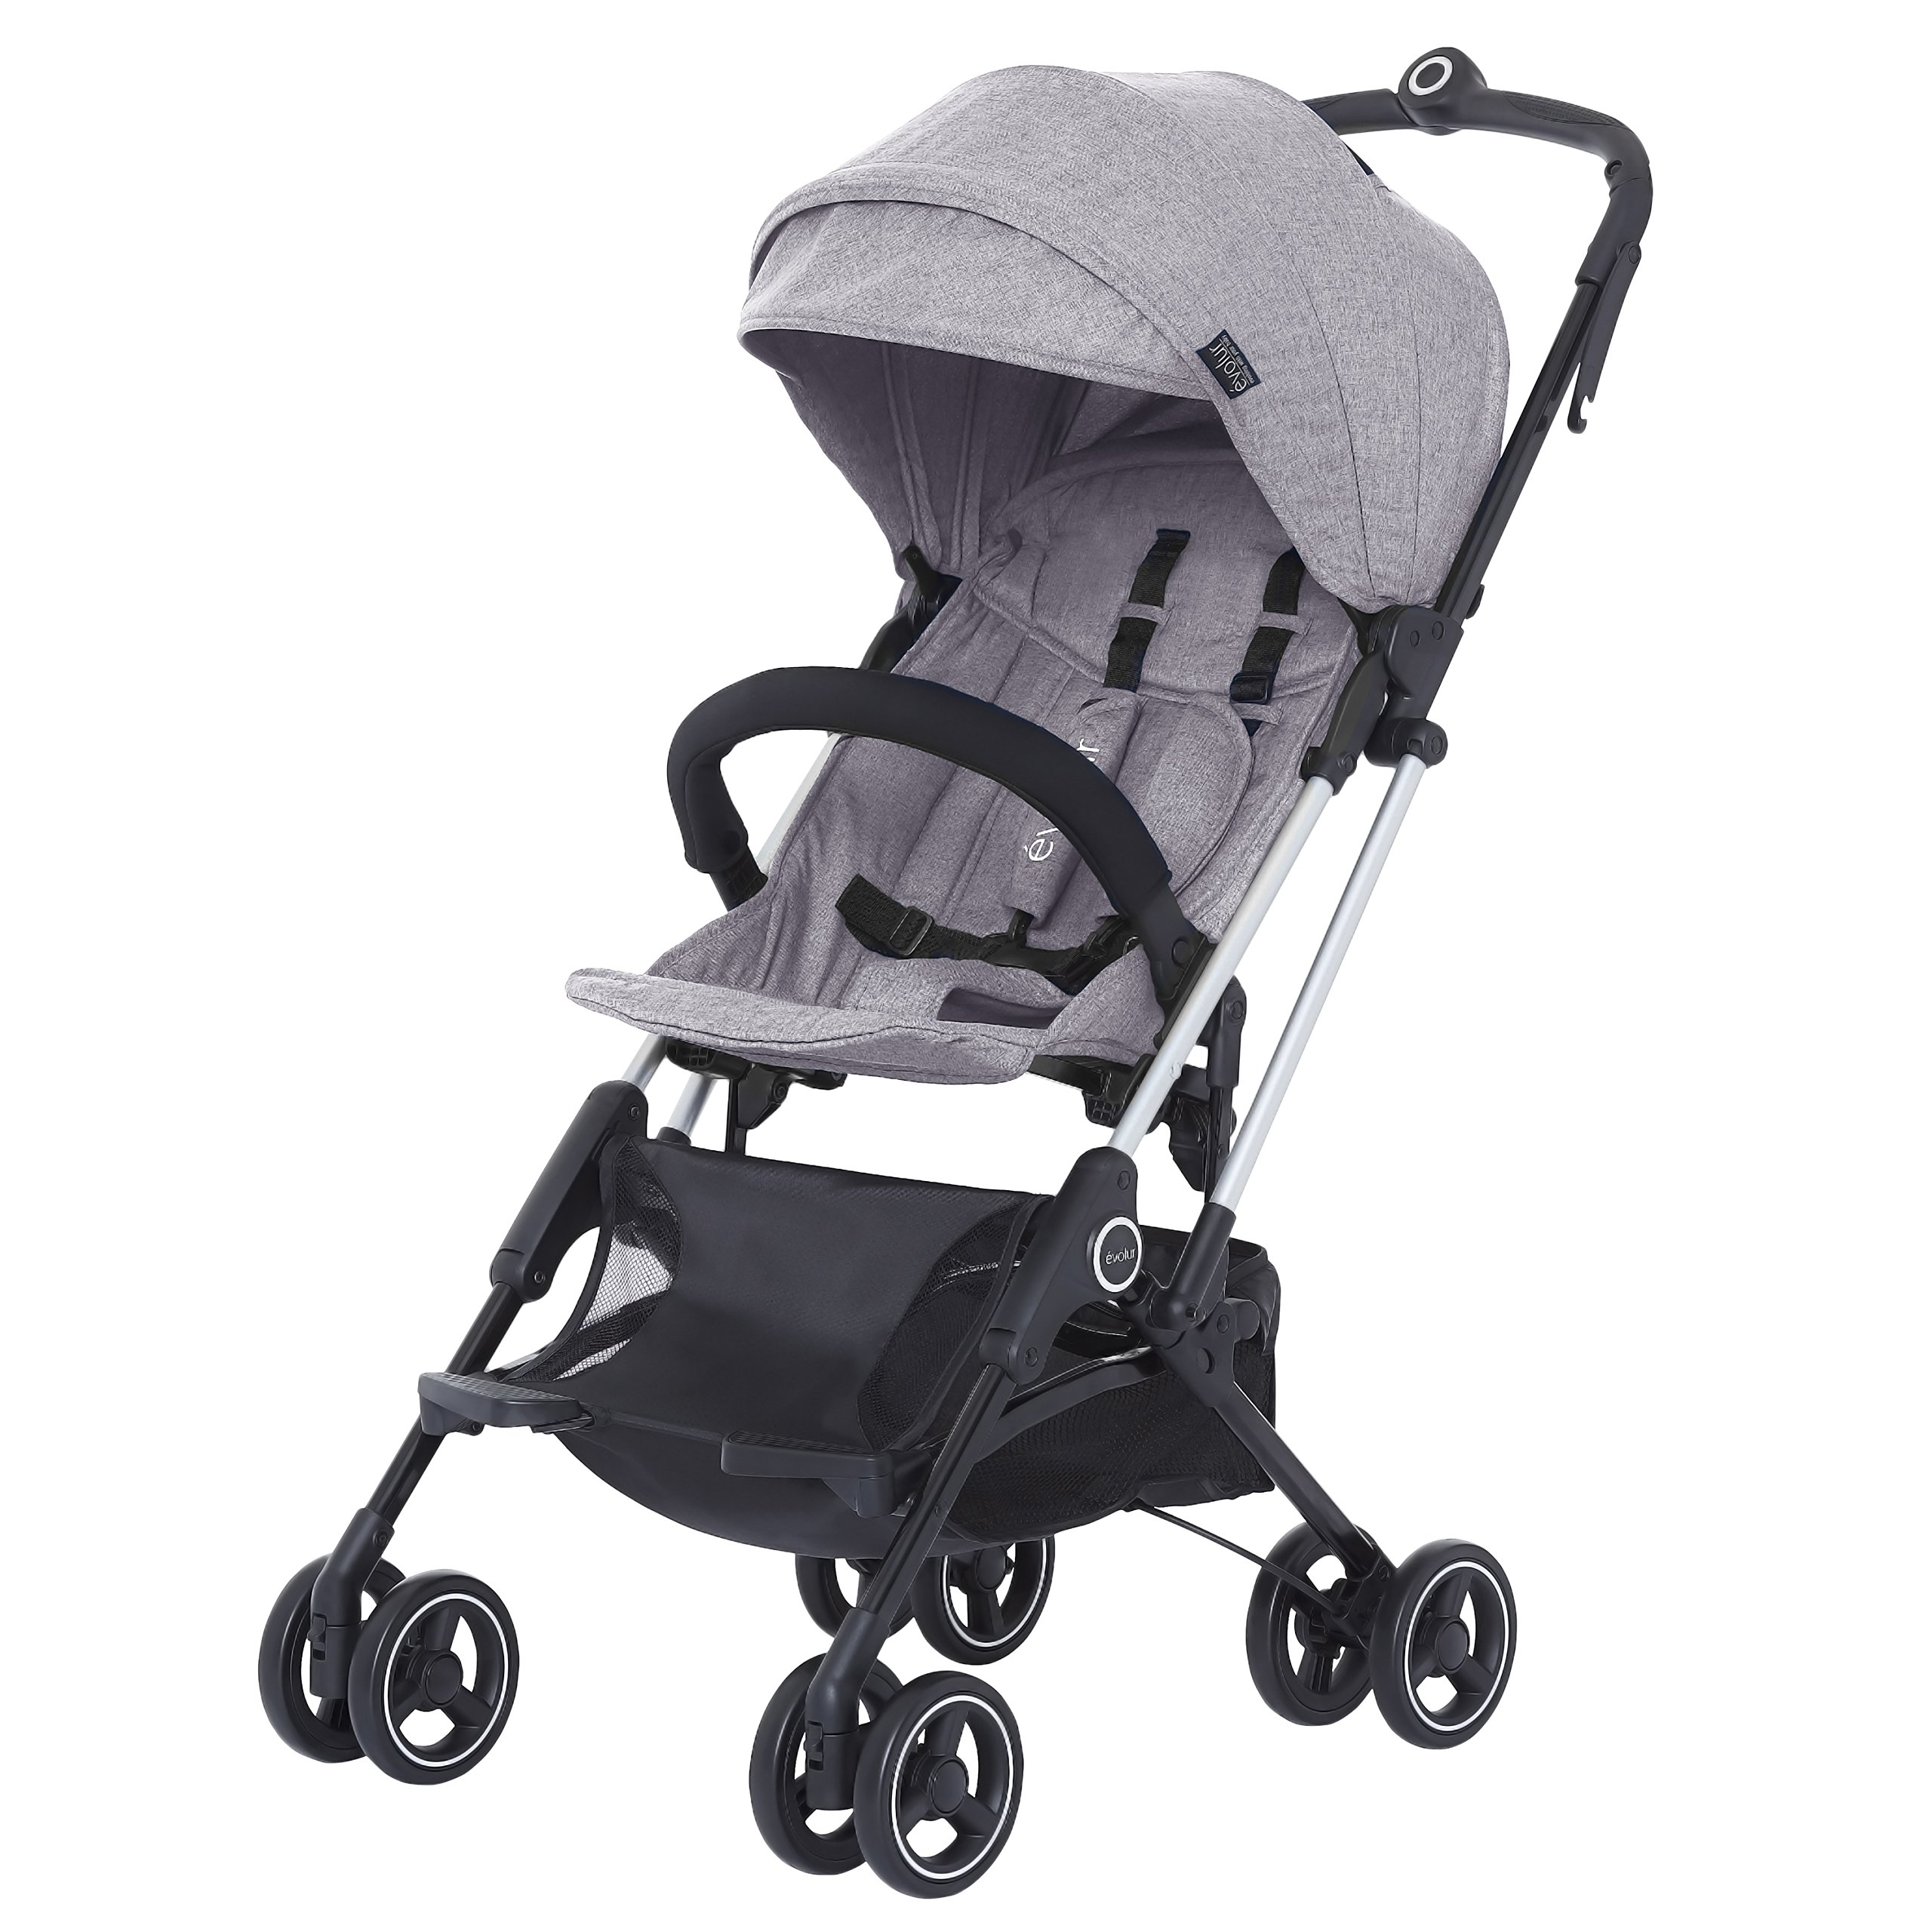 Evolur Voyager Stroller: Grey | One-Hand Easy Fold | Ultra Lightweight Compact Baby Stroller | Best Used for Airplane & Car Travel | Safe, Comfortable & Smooth Ride | Carries up to 50 Pounds |